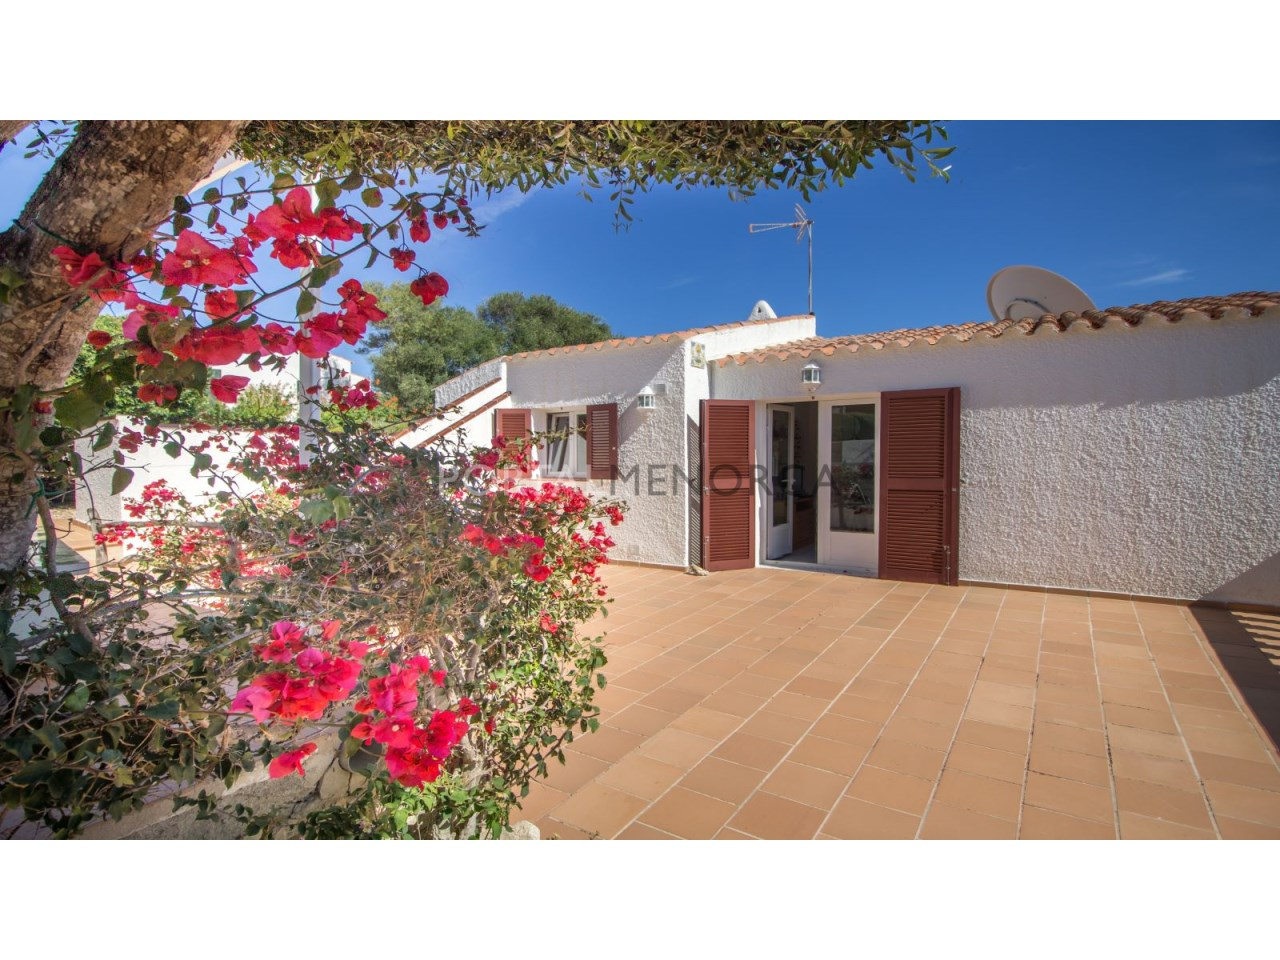 House for sale in Menorca with community pool y big terrace